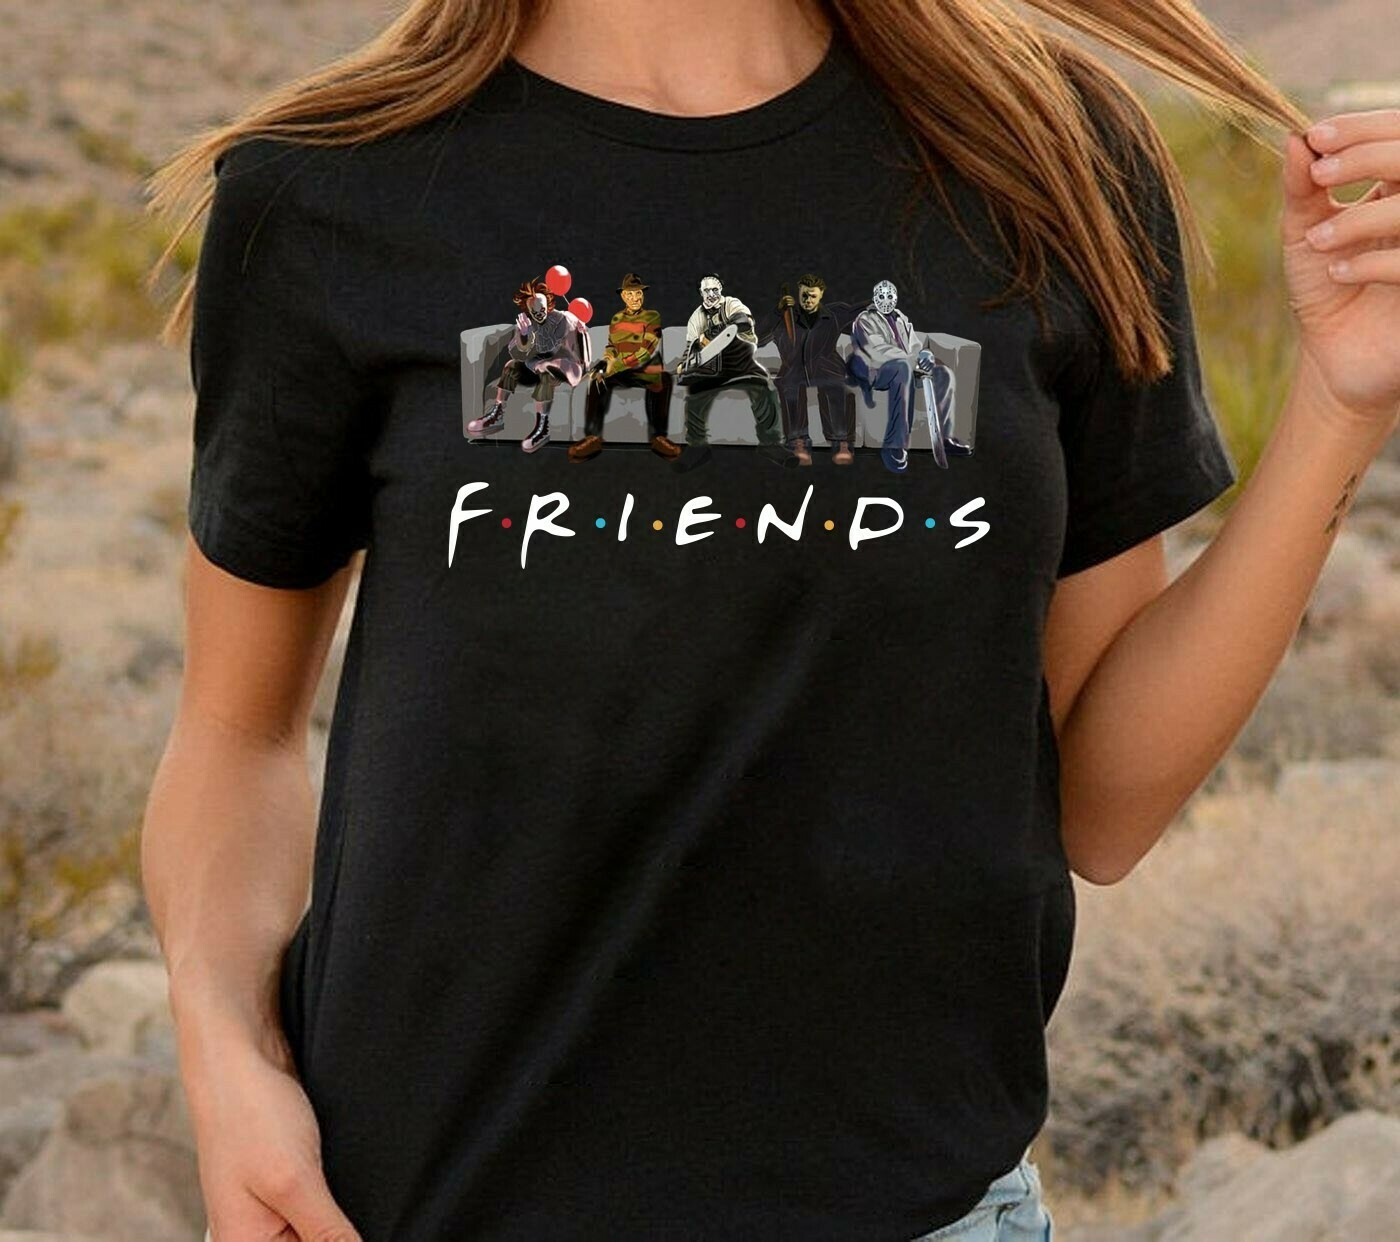 Horror Friends Sinister Friends TV Show T-Shirt Gift for Bestie Friends 90s-Horror IT Friends Shirt-Halloween Horror funny shirt Long Sleeve Sweatshirt Hoodie Jolly Family Gifts